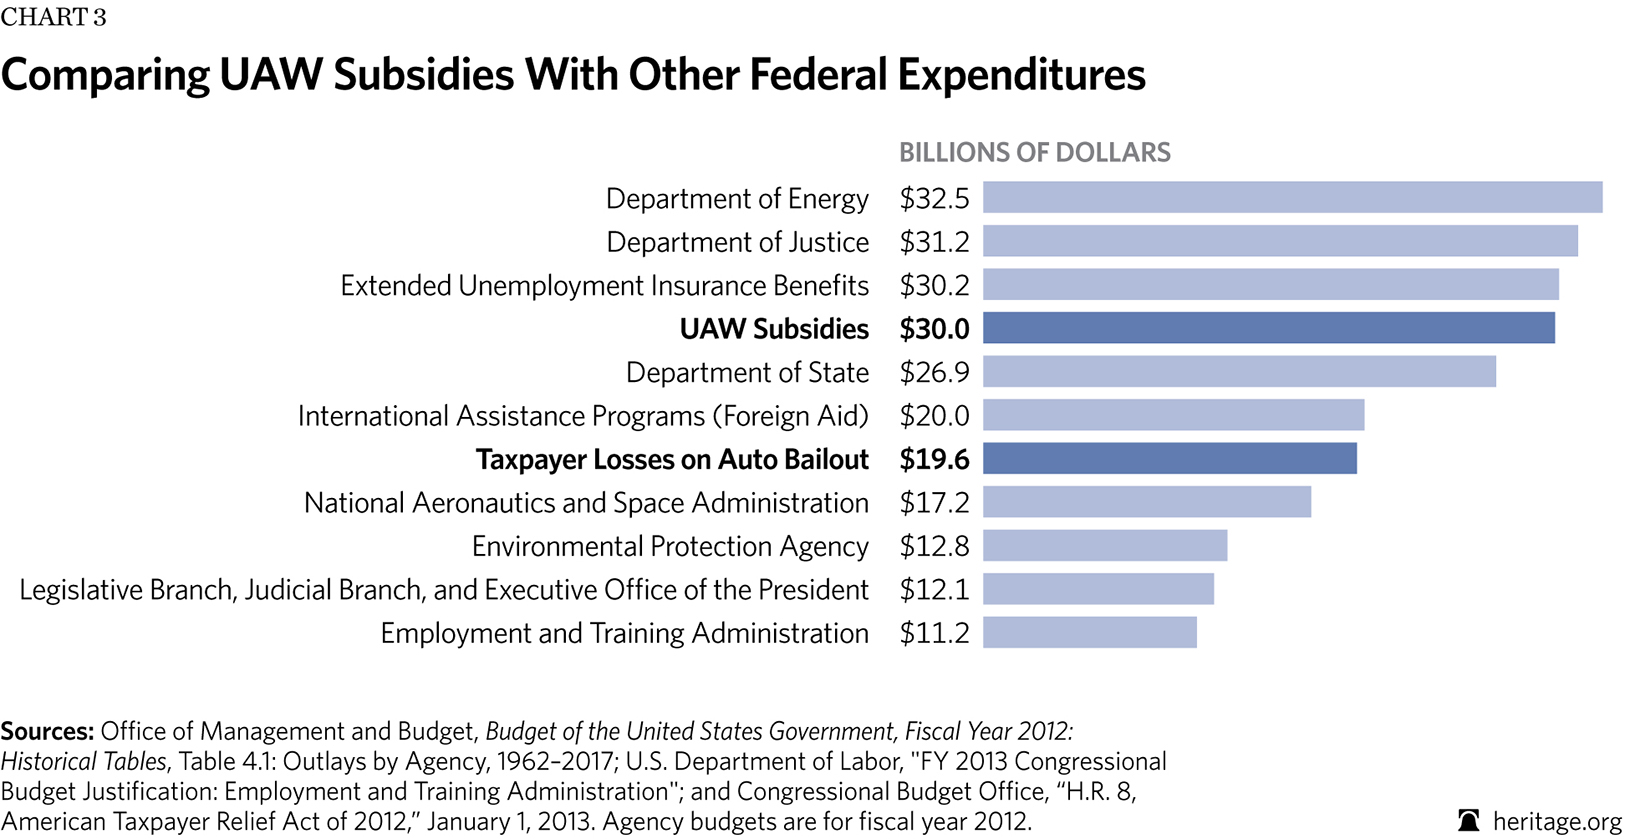 Comparing UAW Subsidies With Other Federal Expenditures